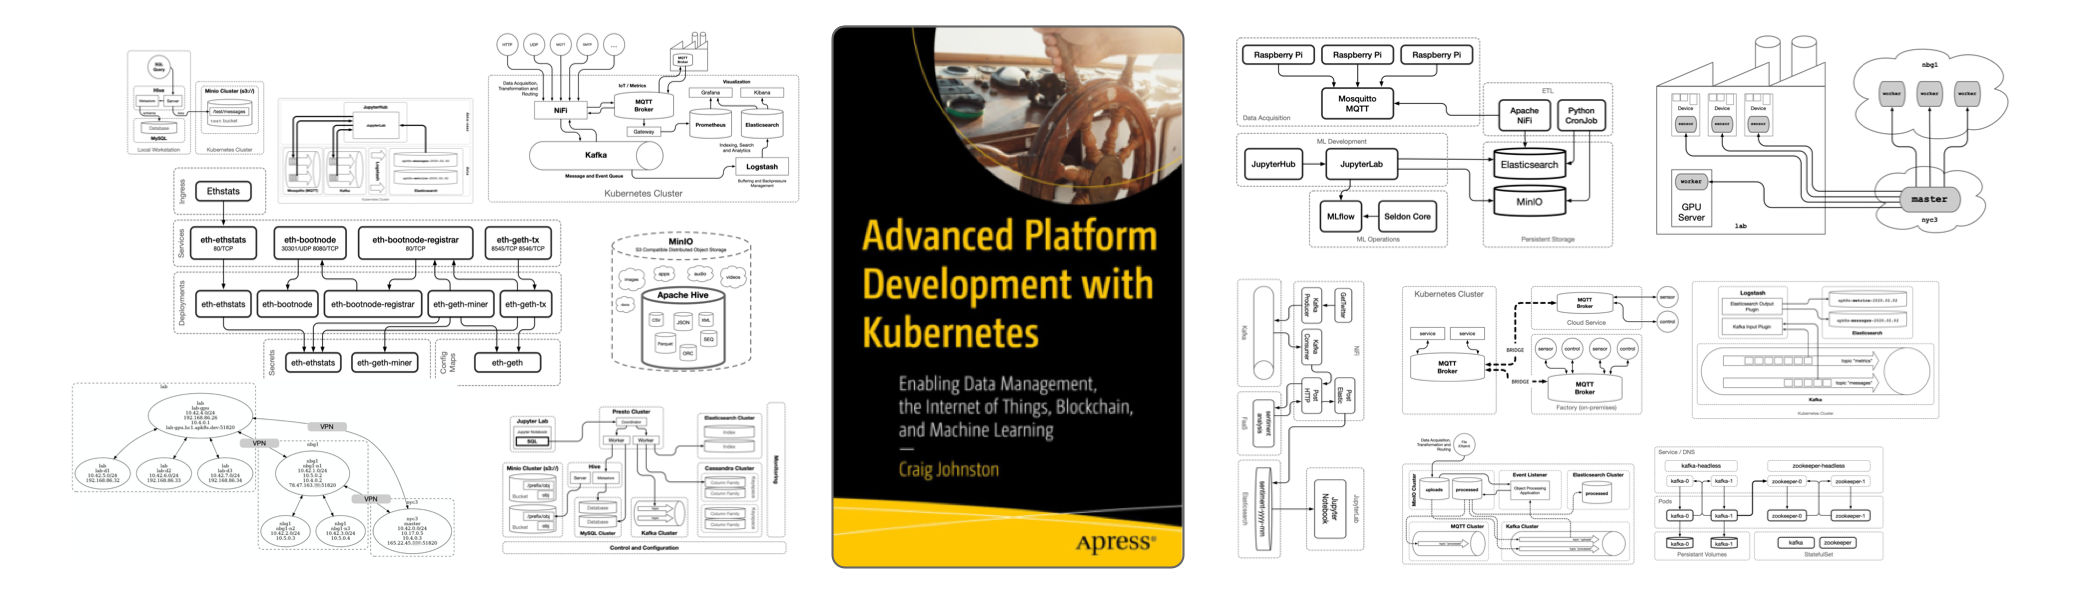 Book Cover - Advanced Platform Development with Kubernetes: Enabling Data Management, the Internet of Things, Blockchain, and Machine Learning